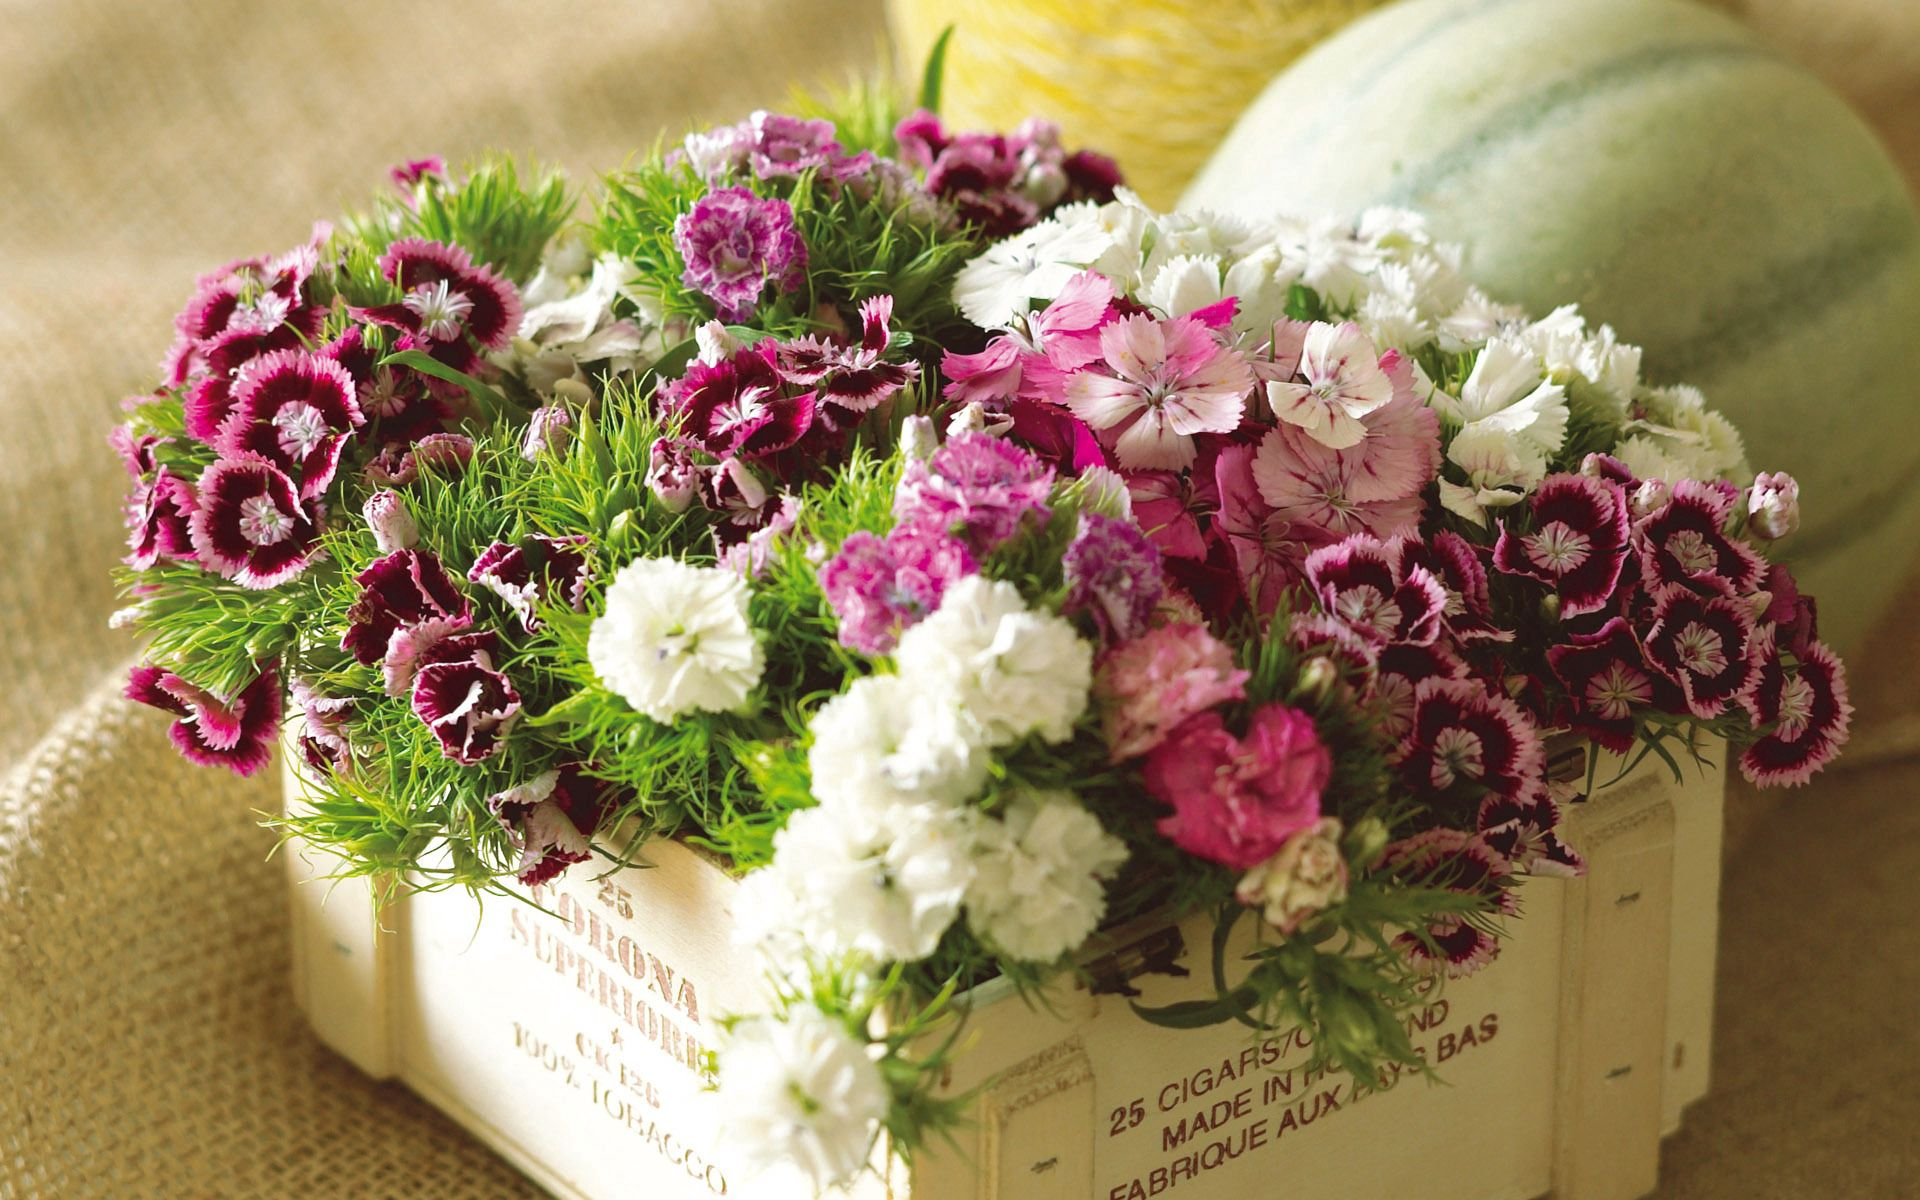 131104 download wallpaper Flowers, Carnations, Multicolored, Bouquet, Box, Grass screensavers and pictures for free